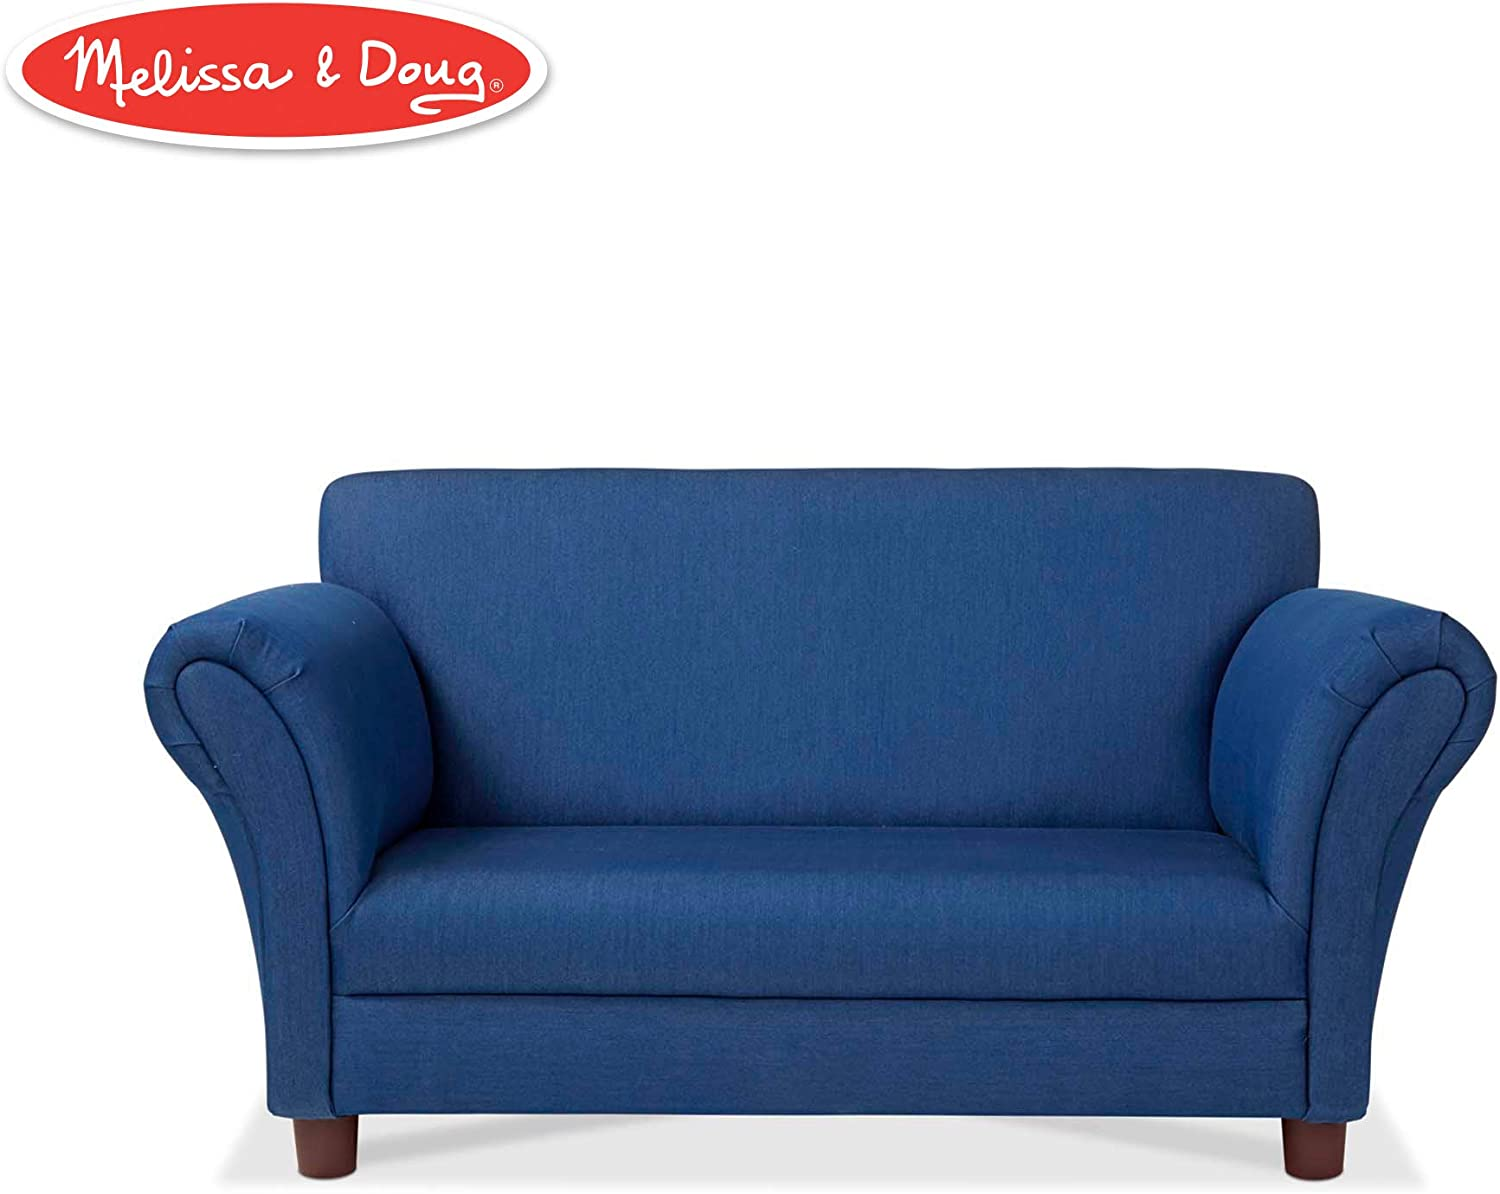 "Melissa & Doug Child's Sofa (Blue Denim Children's Furniture, 34.4"" H x 20.5"" W x 18.3"" L)"